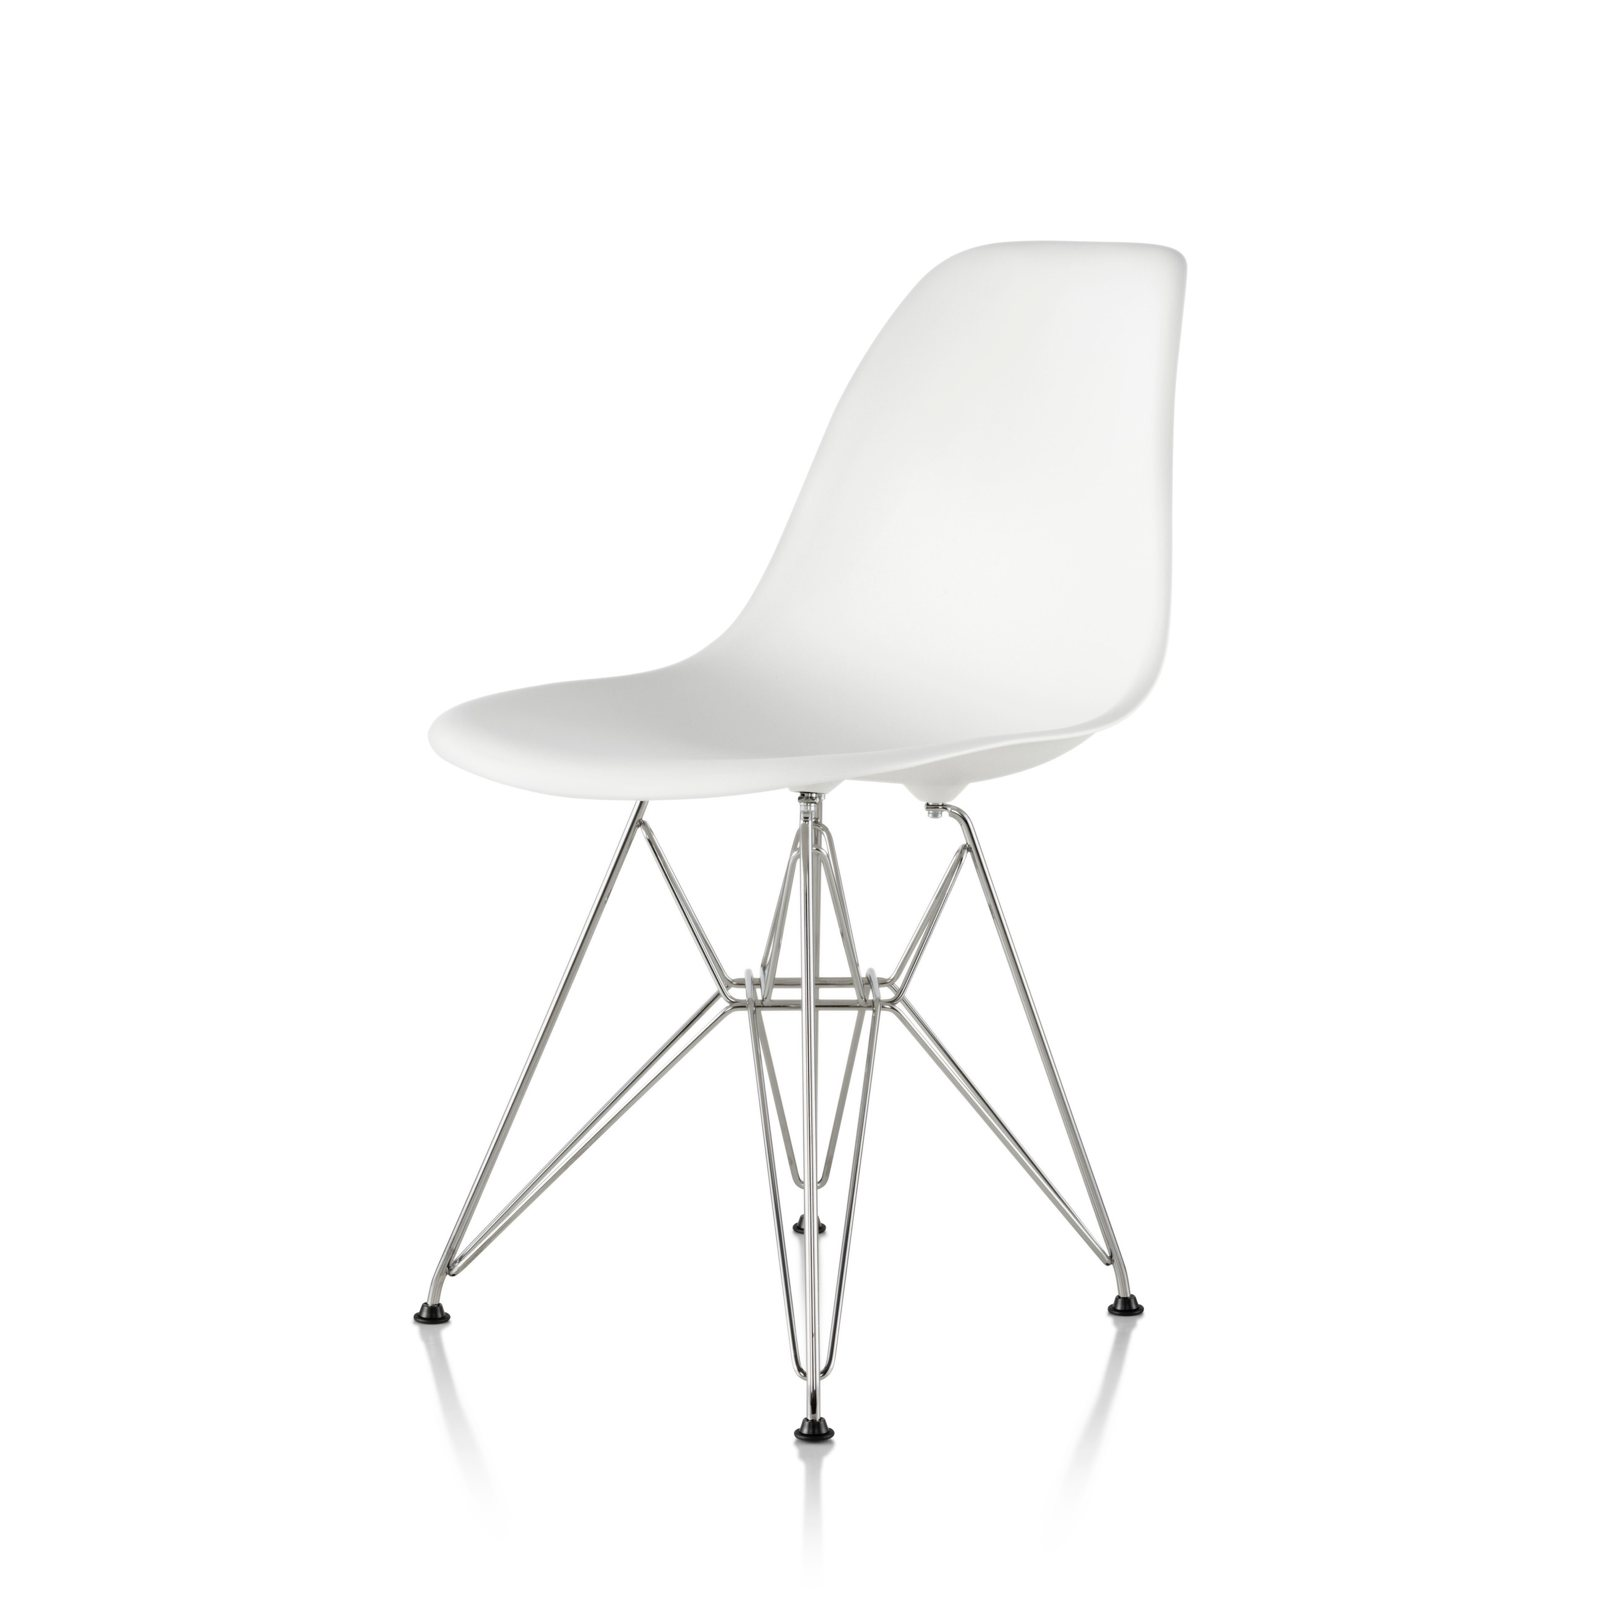 Herman Miller Eames Molded Plastic Chair eames molded plastic side chair wire basecharles & ray eames